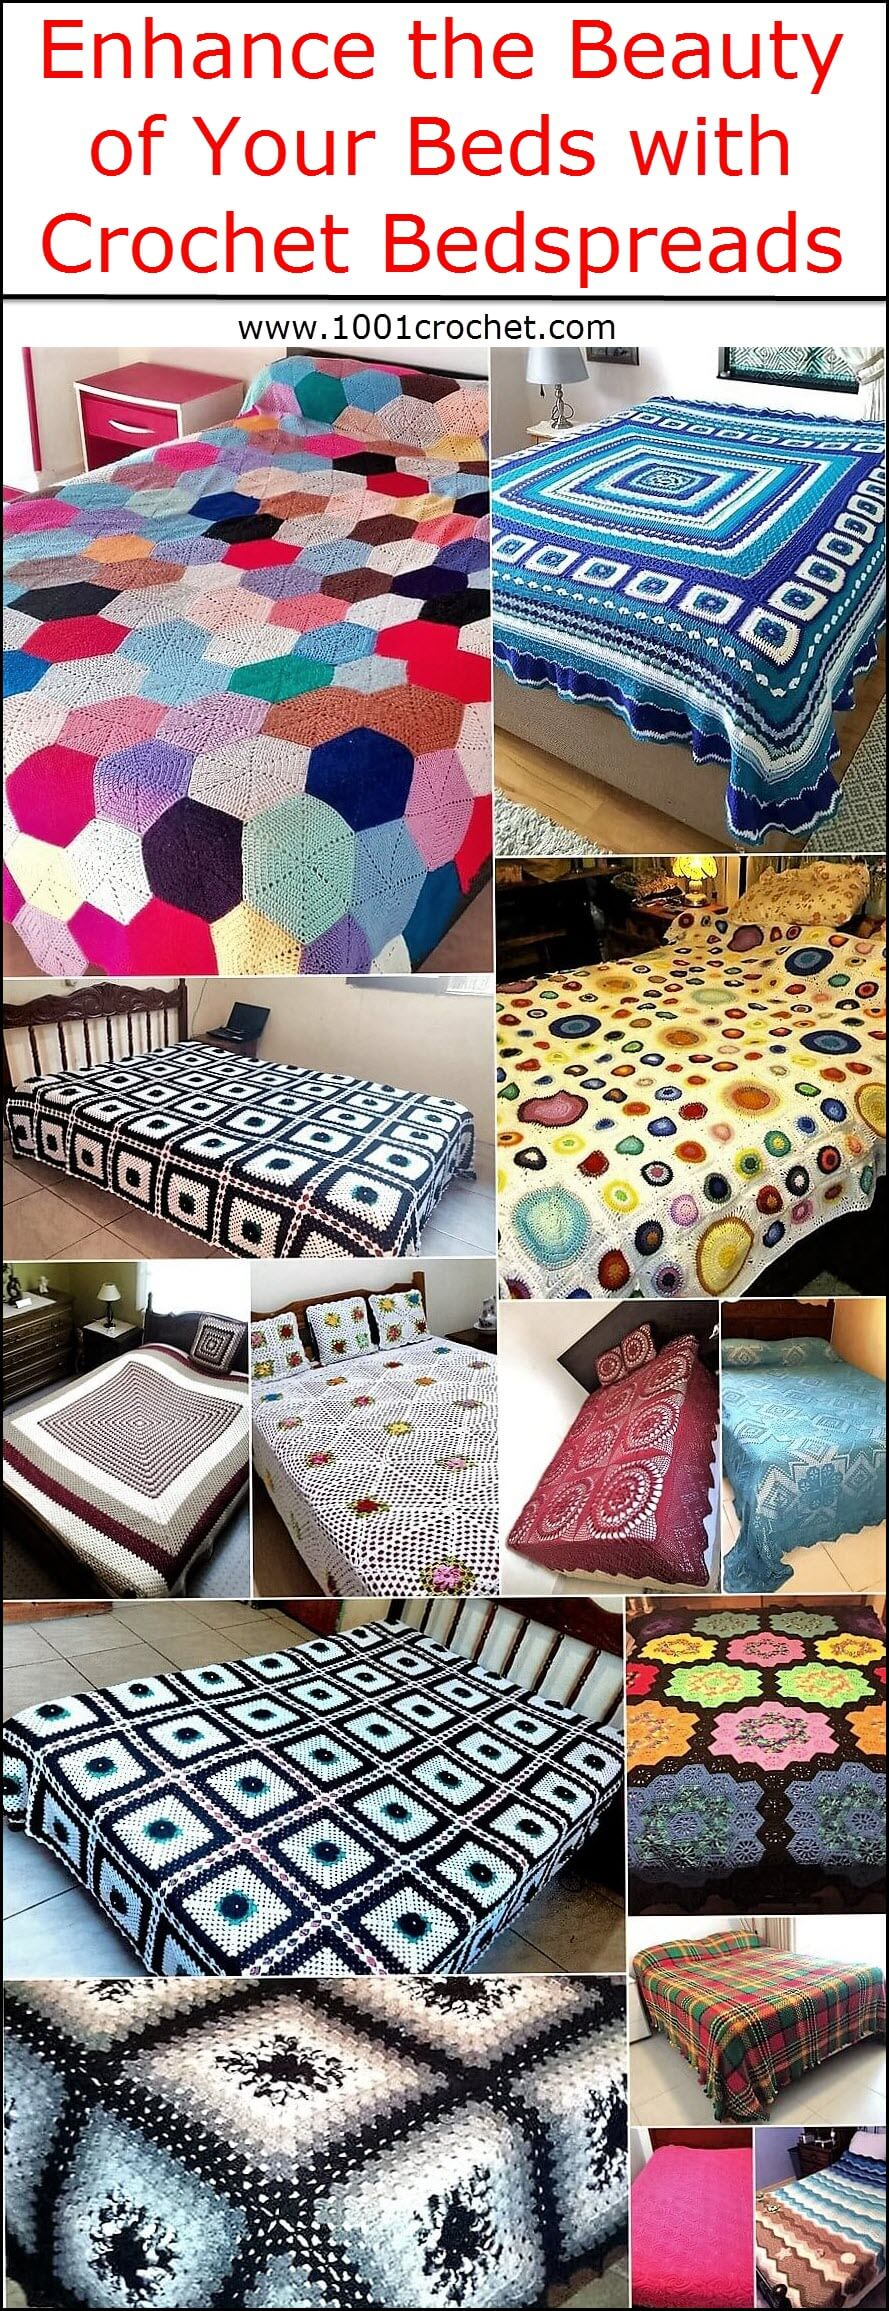 Beauty of Your Beds with Crochet Bedspreads